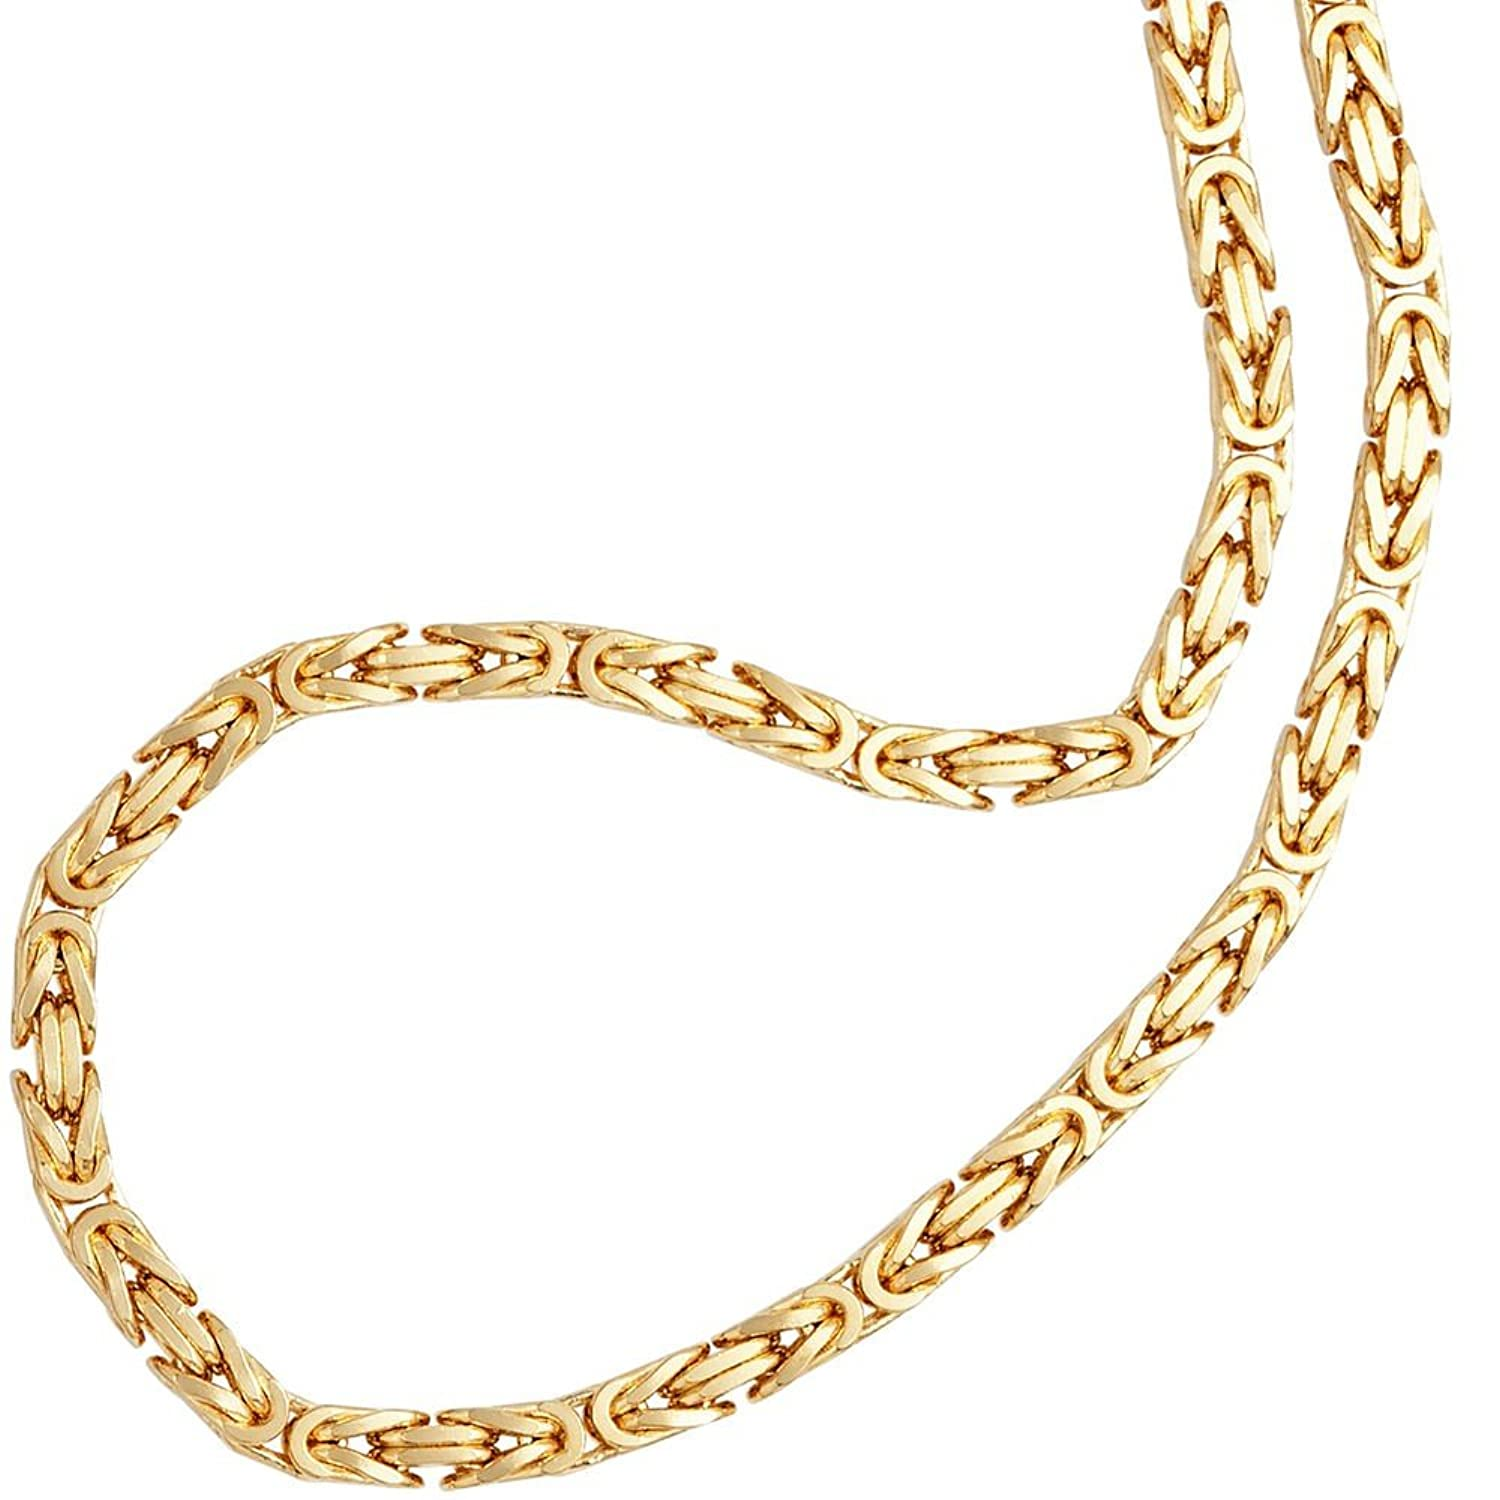 2mm thick 14k gold plated on solid sterling silver 925 stamped Italian Byzantine, Etruscan, Birdcage, Fool's Dilemma, Idiot's Trap, Idiot's Delight, Bird's Nest, King's Braid link chain necklace bracelet anklet with lobster c